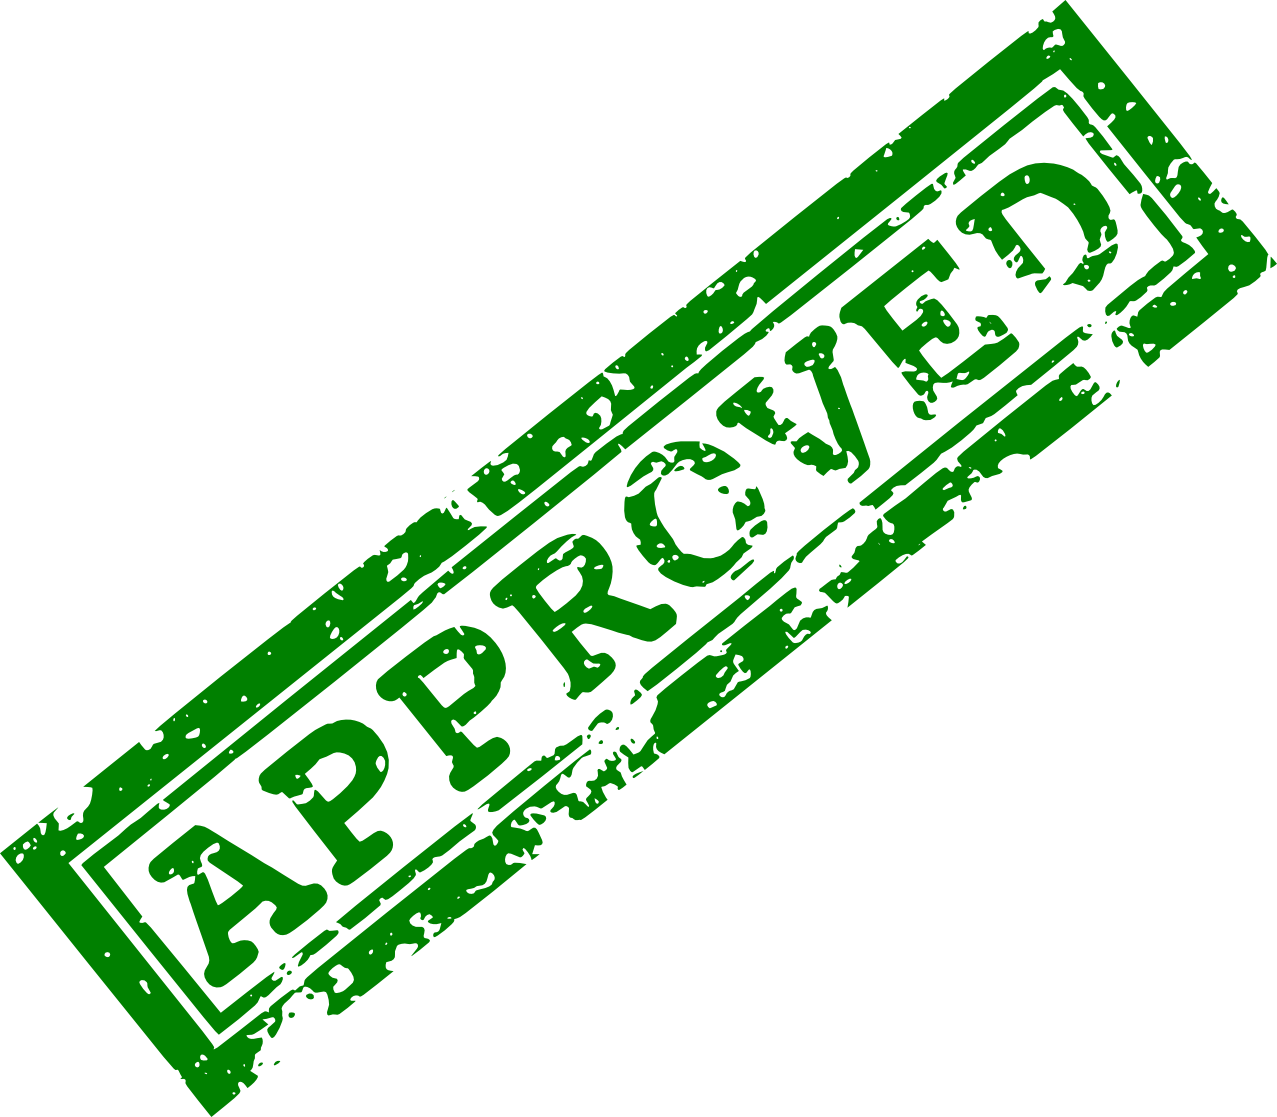 Approved stamp png. Red green transparent